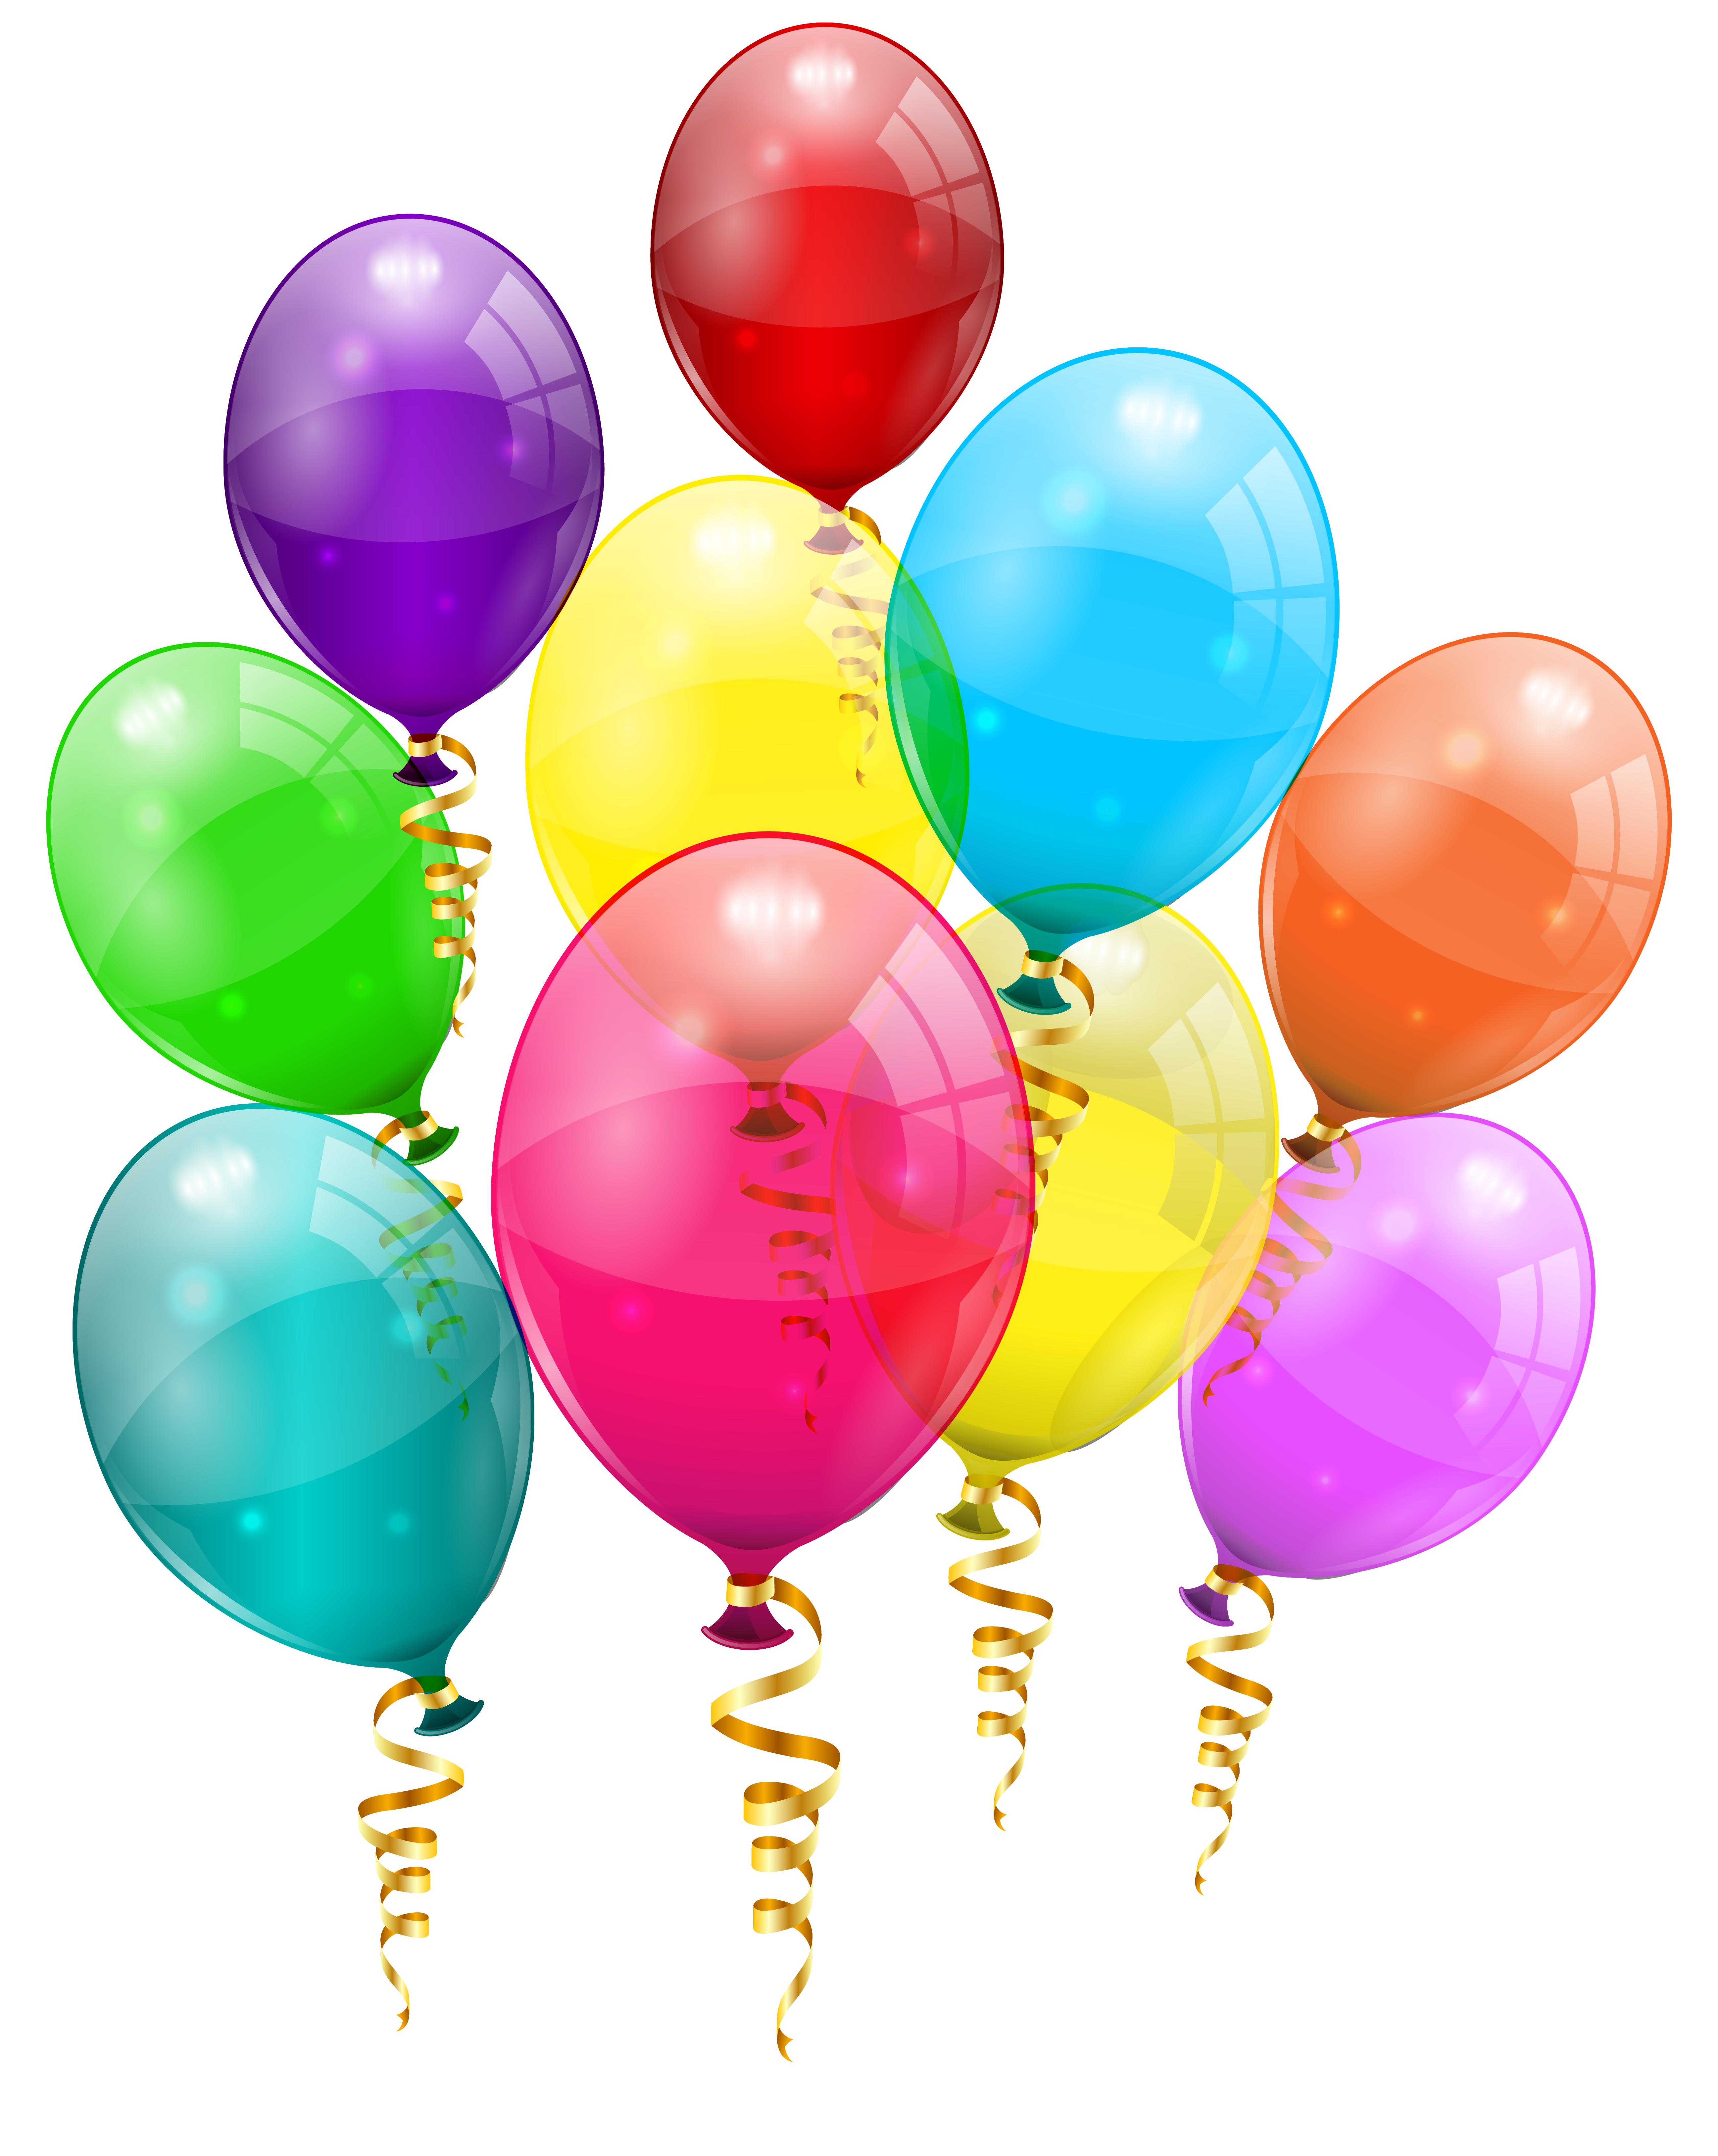 5189x6511 Bunch Of Colorful Balloons Png Clipart Imageu200b Gallery